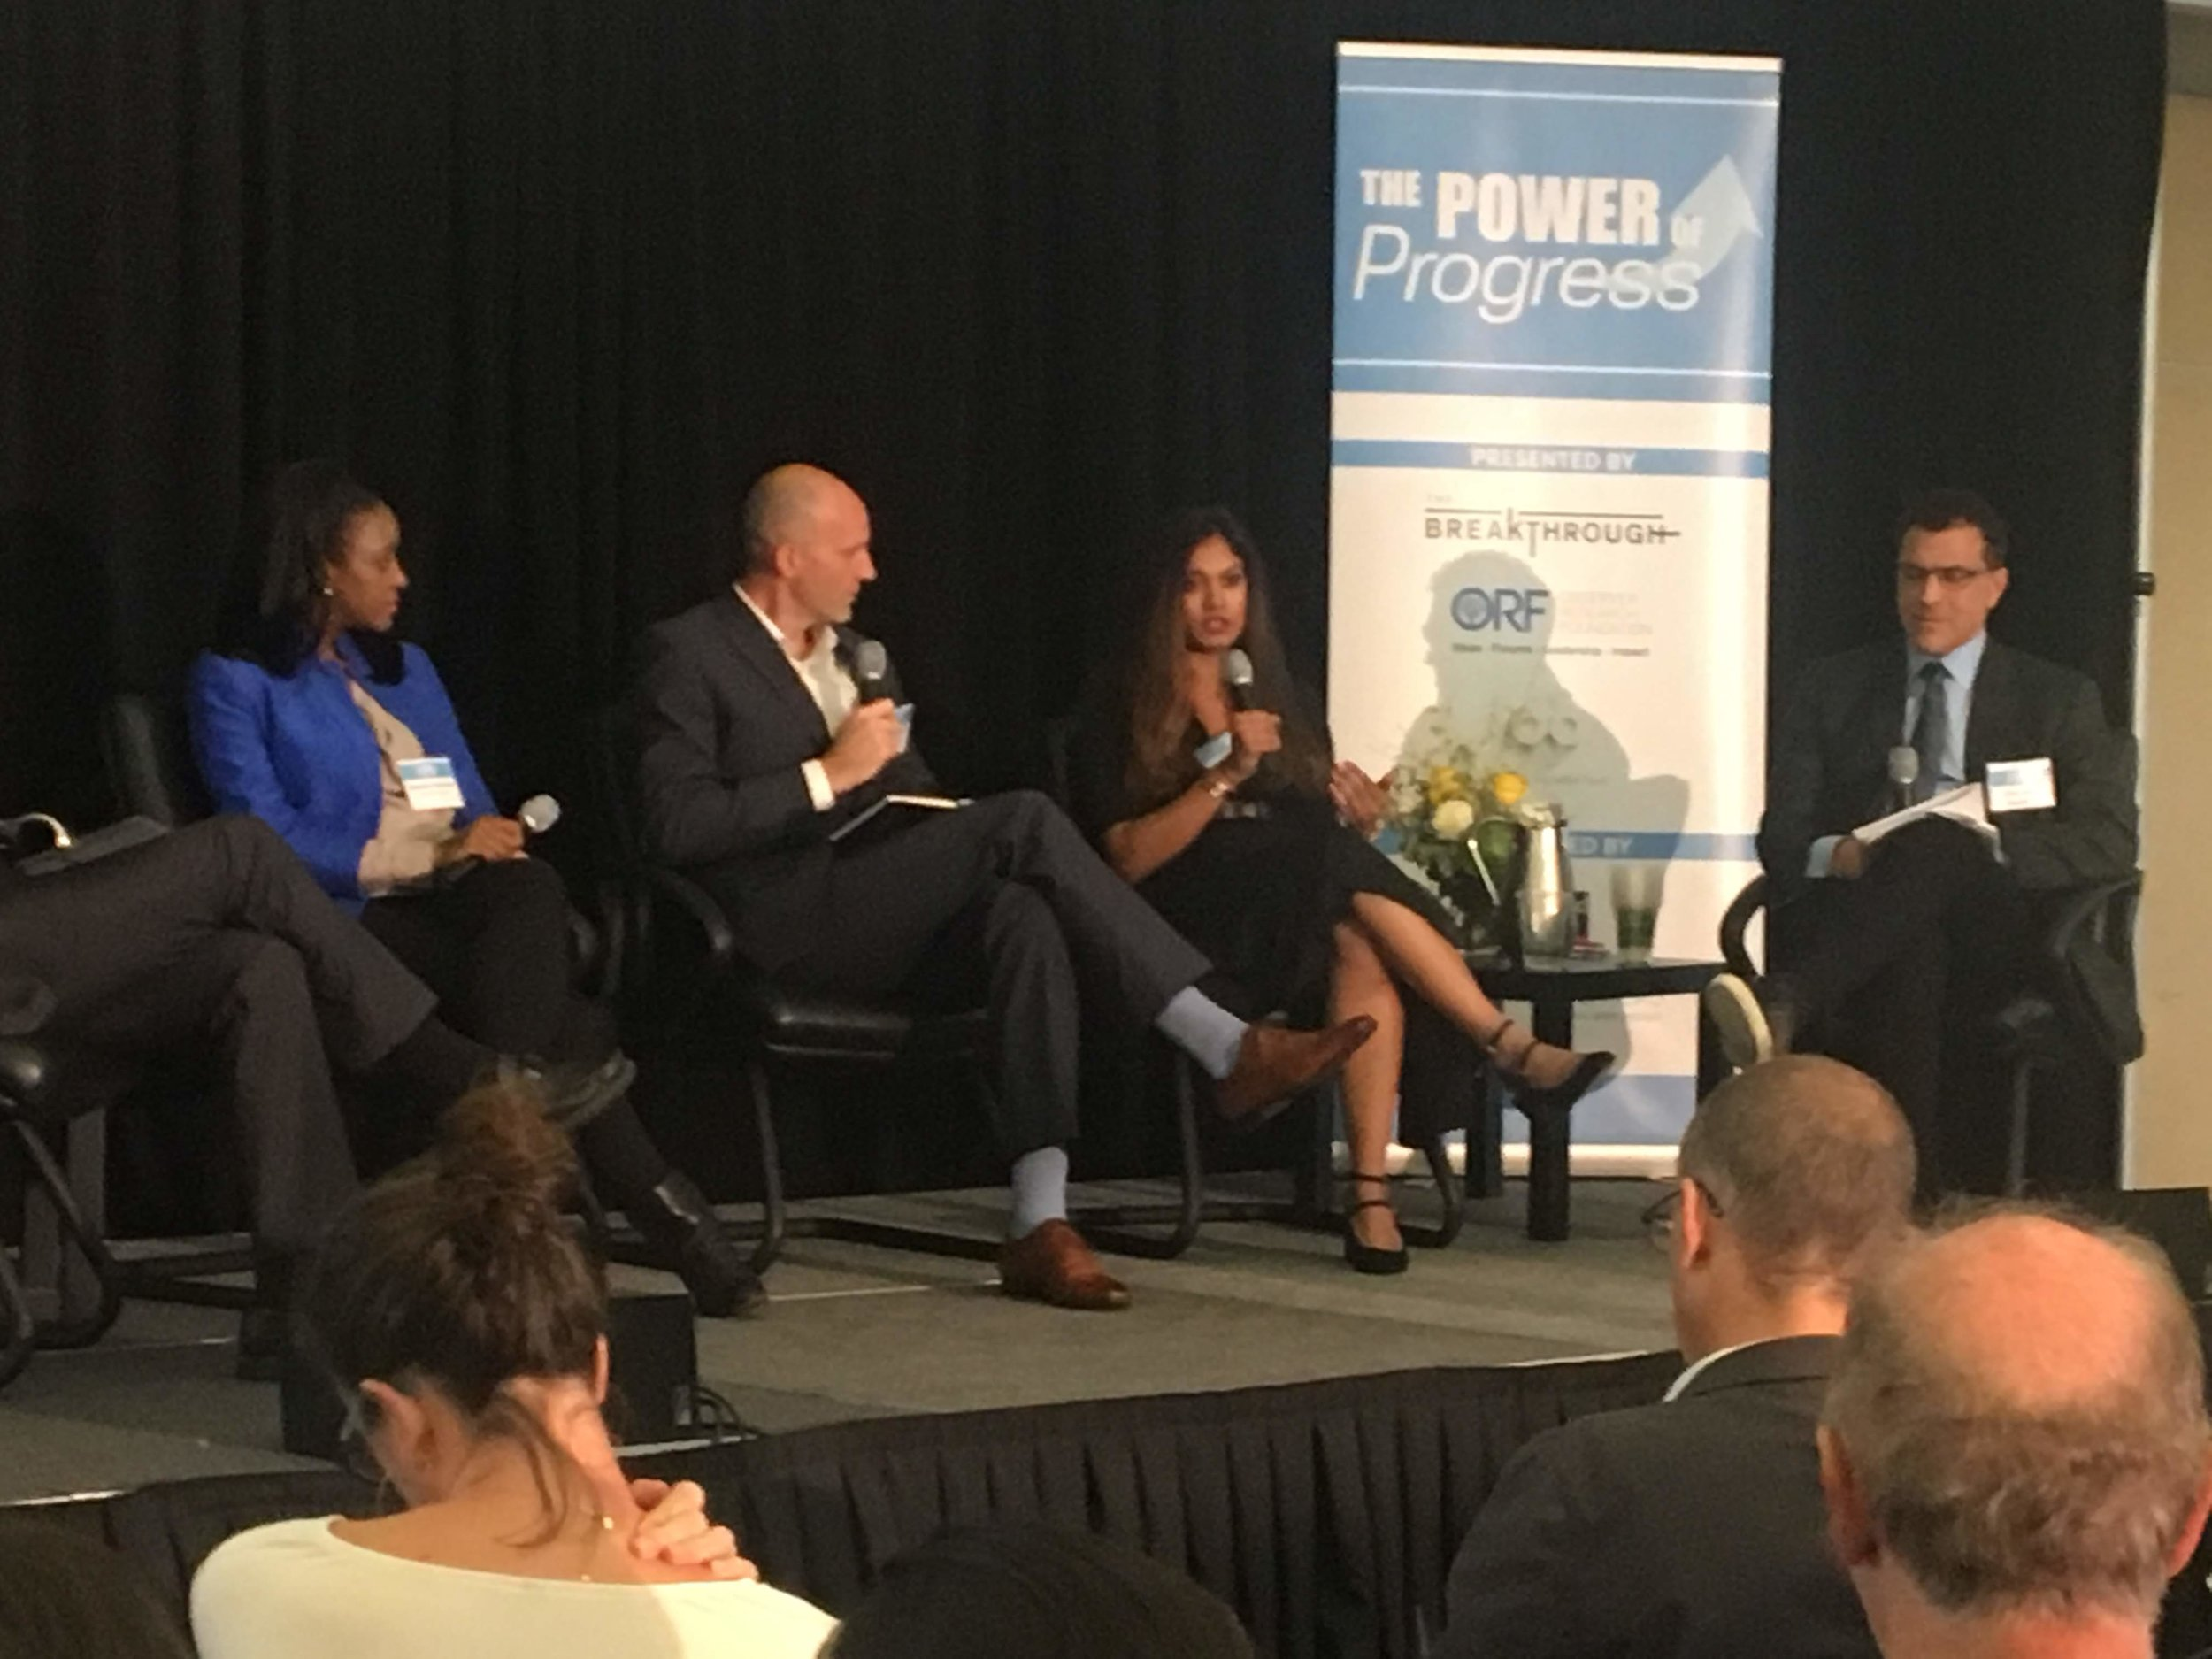 Power of Progress Conference